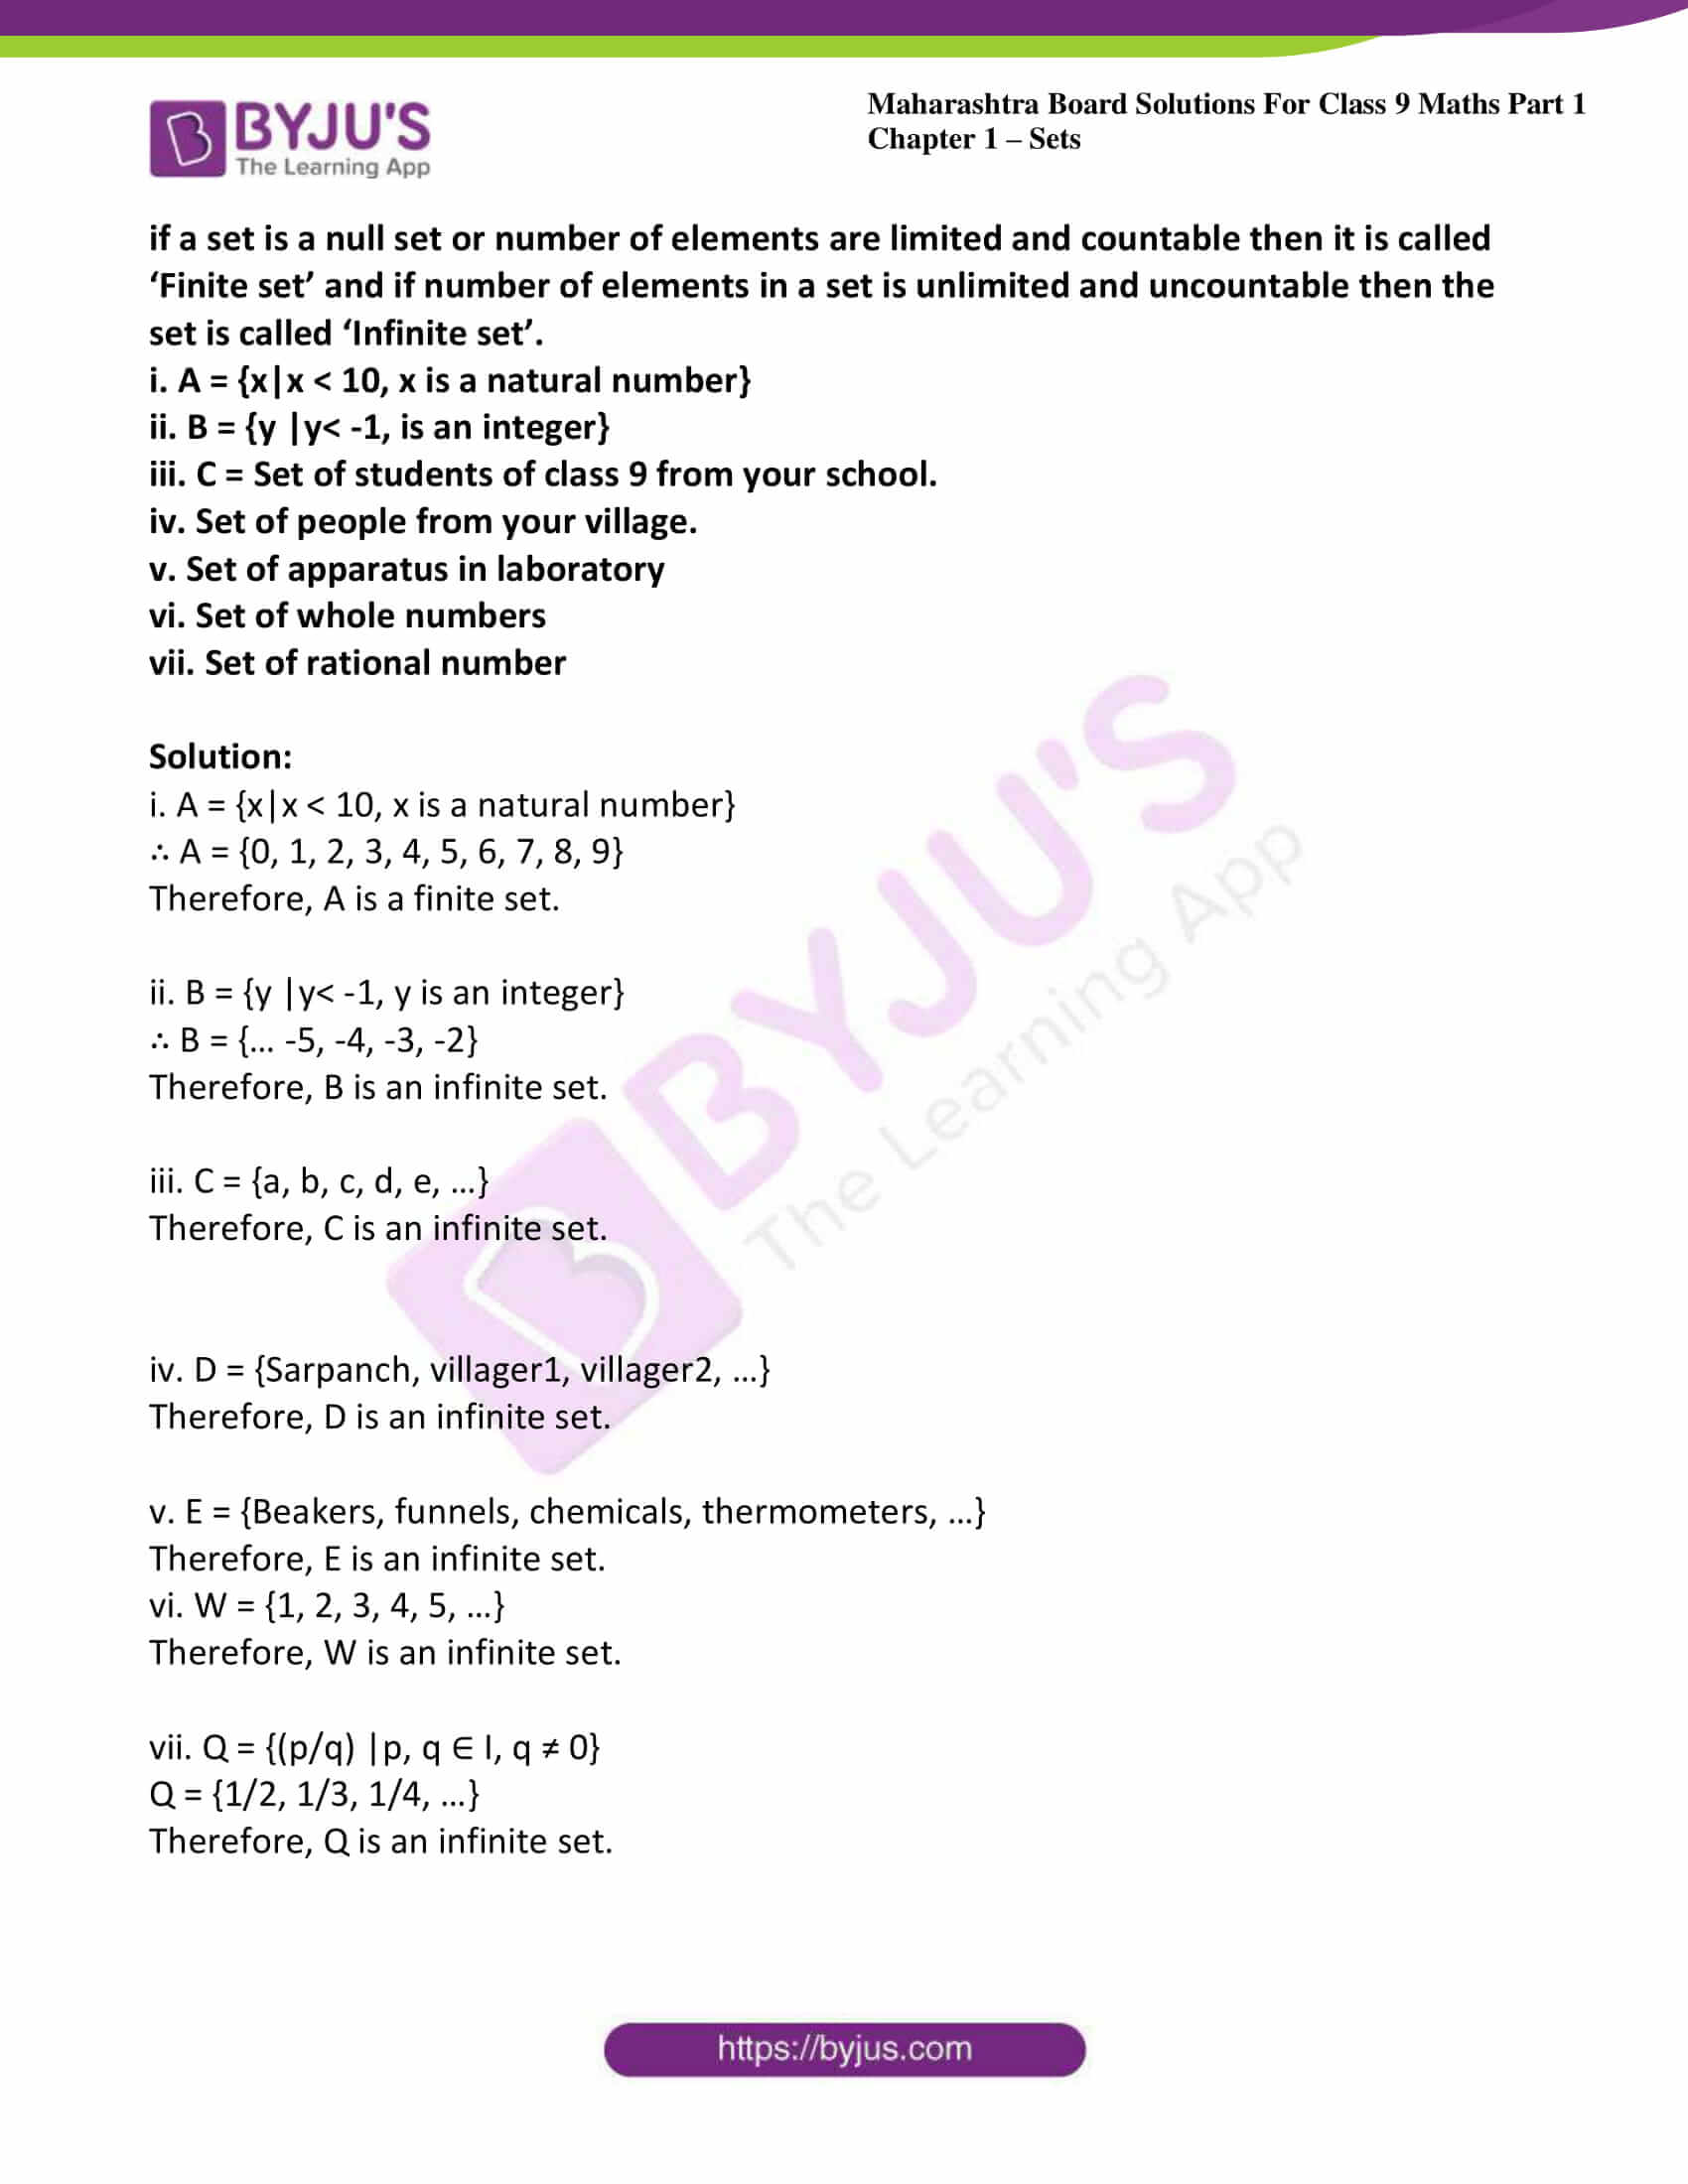 msbshse sol class 9 maths part 1 chapter 1 sets 07